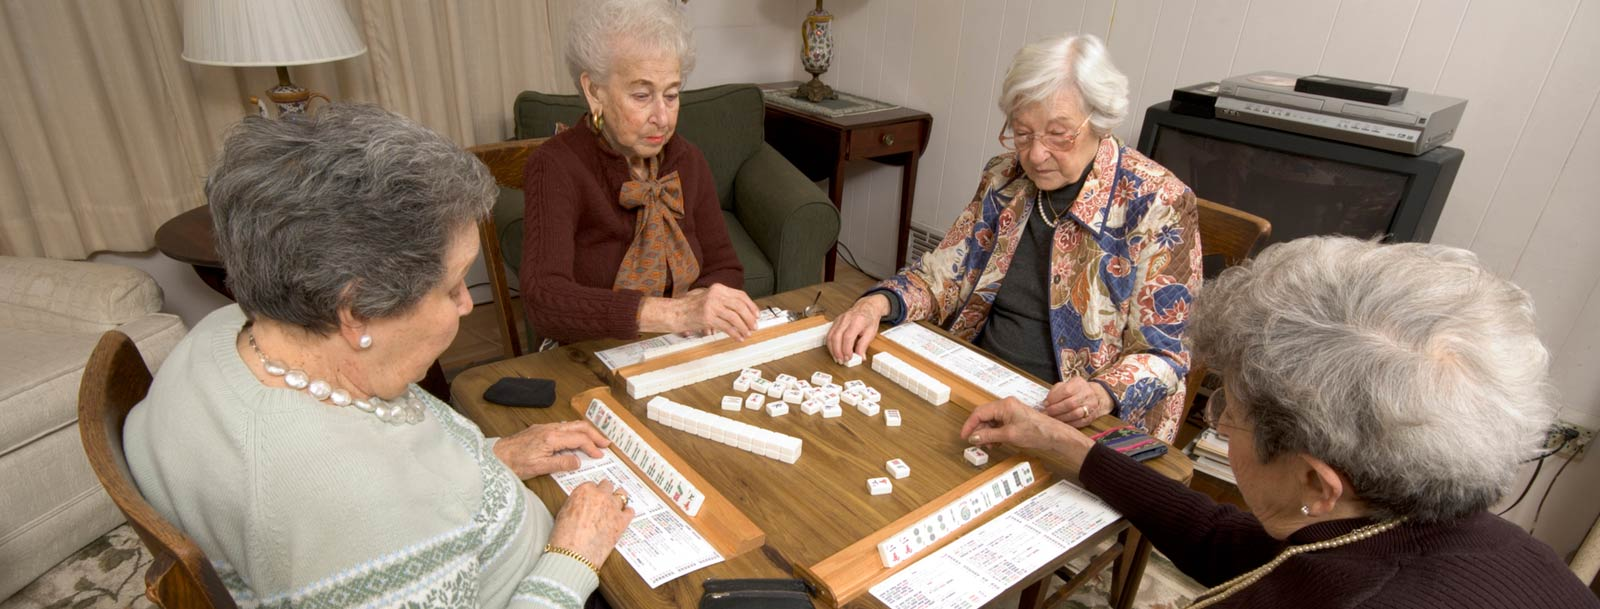 Residents playing dominoes at the senior living facility in Didge City